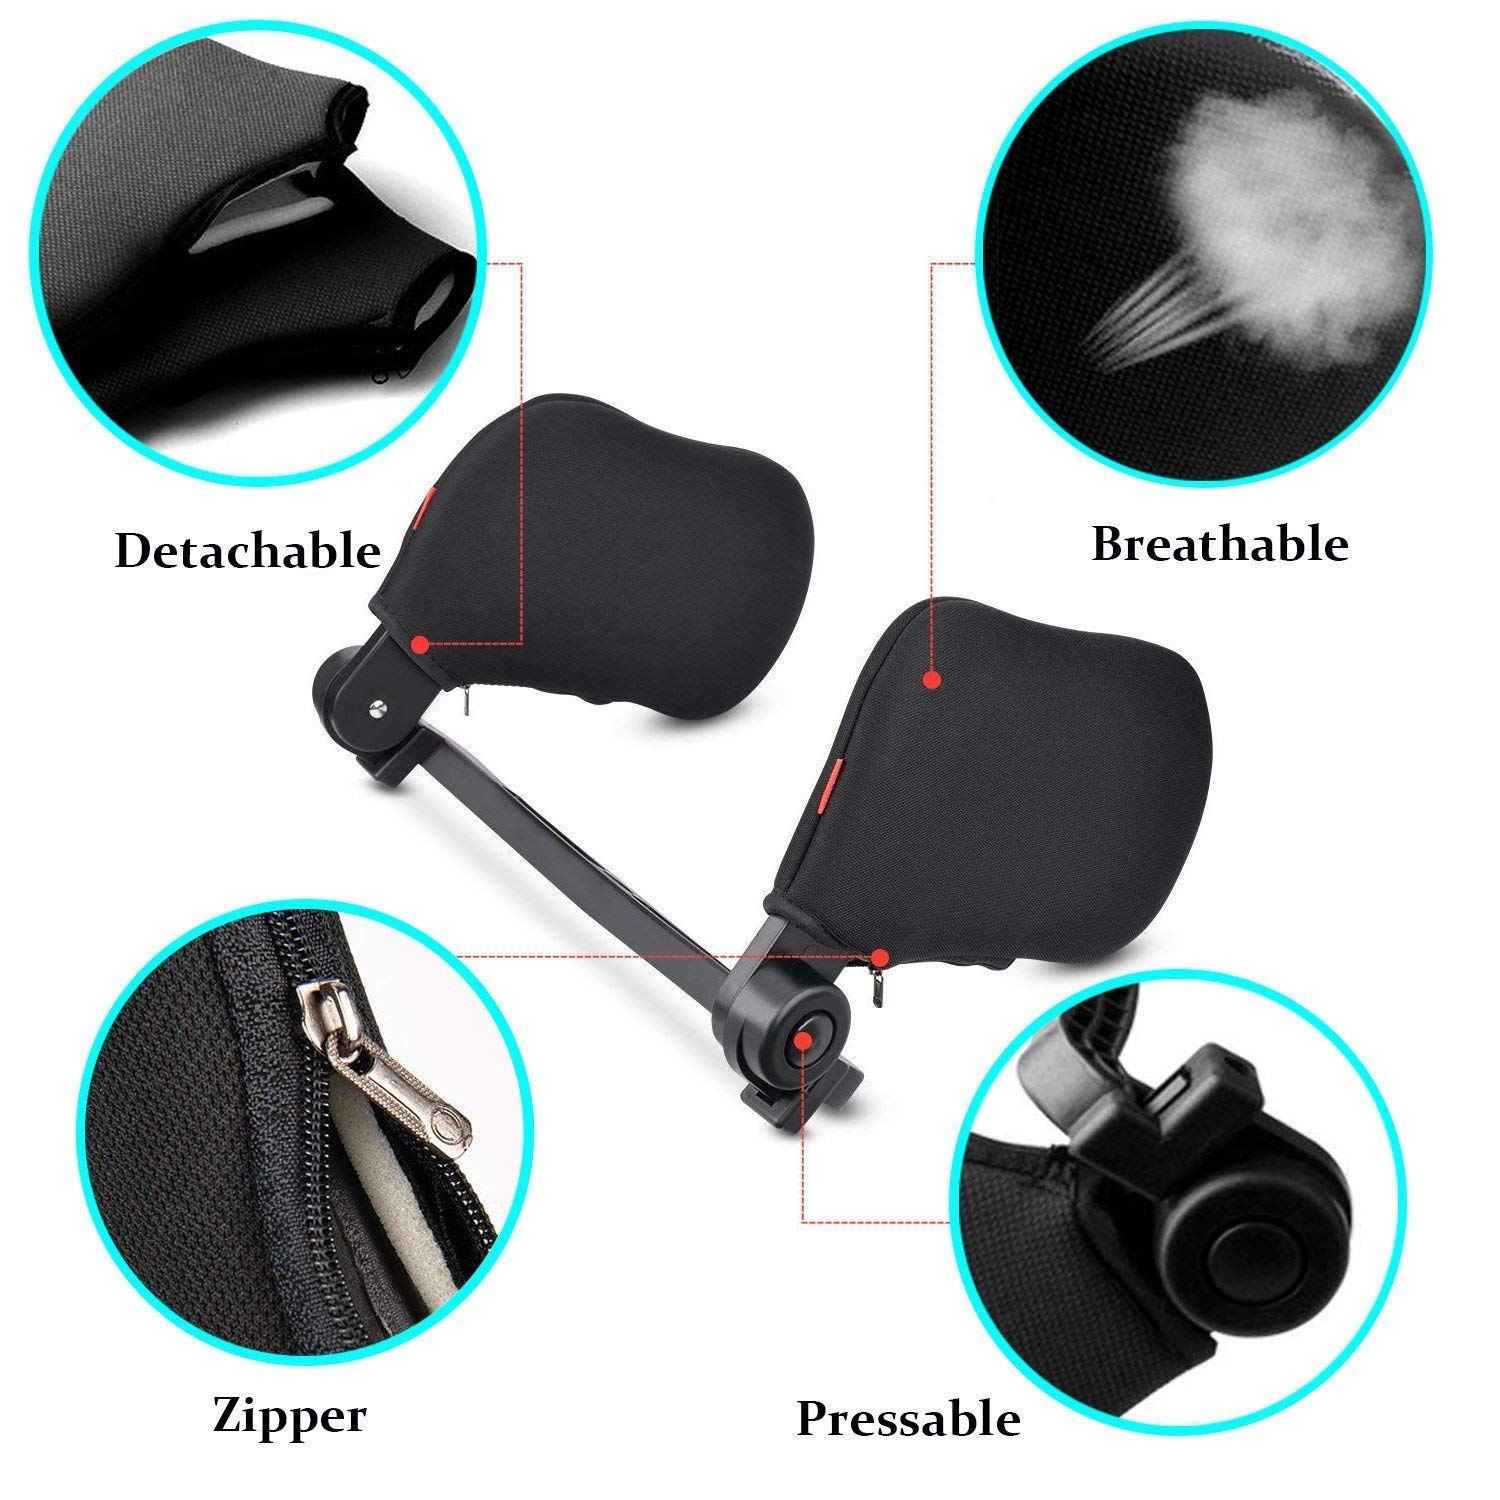 Car Seat Headrest Car Neck Pillow Neck Support Suitable for Adult and Kids Black Retractable Support on Both Sides Car Seat Headrest TINDERALA Neck Pillow with High Elastic Nylon